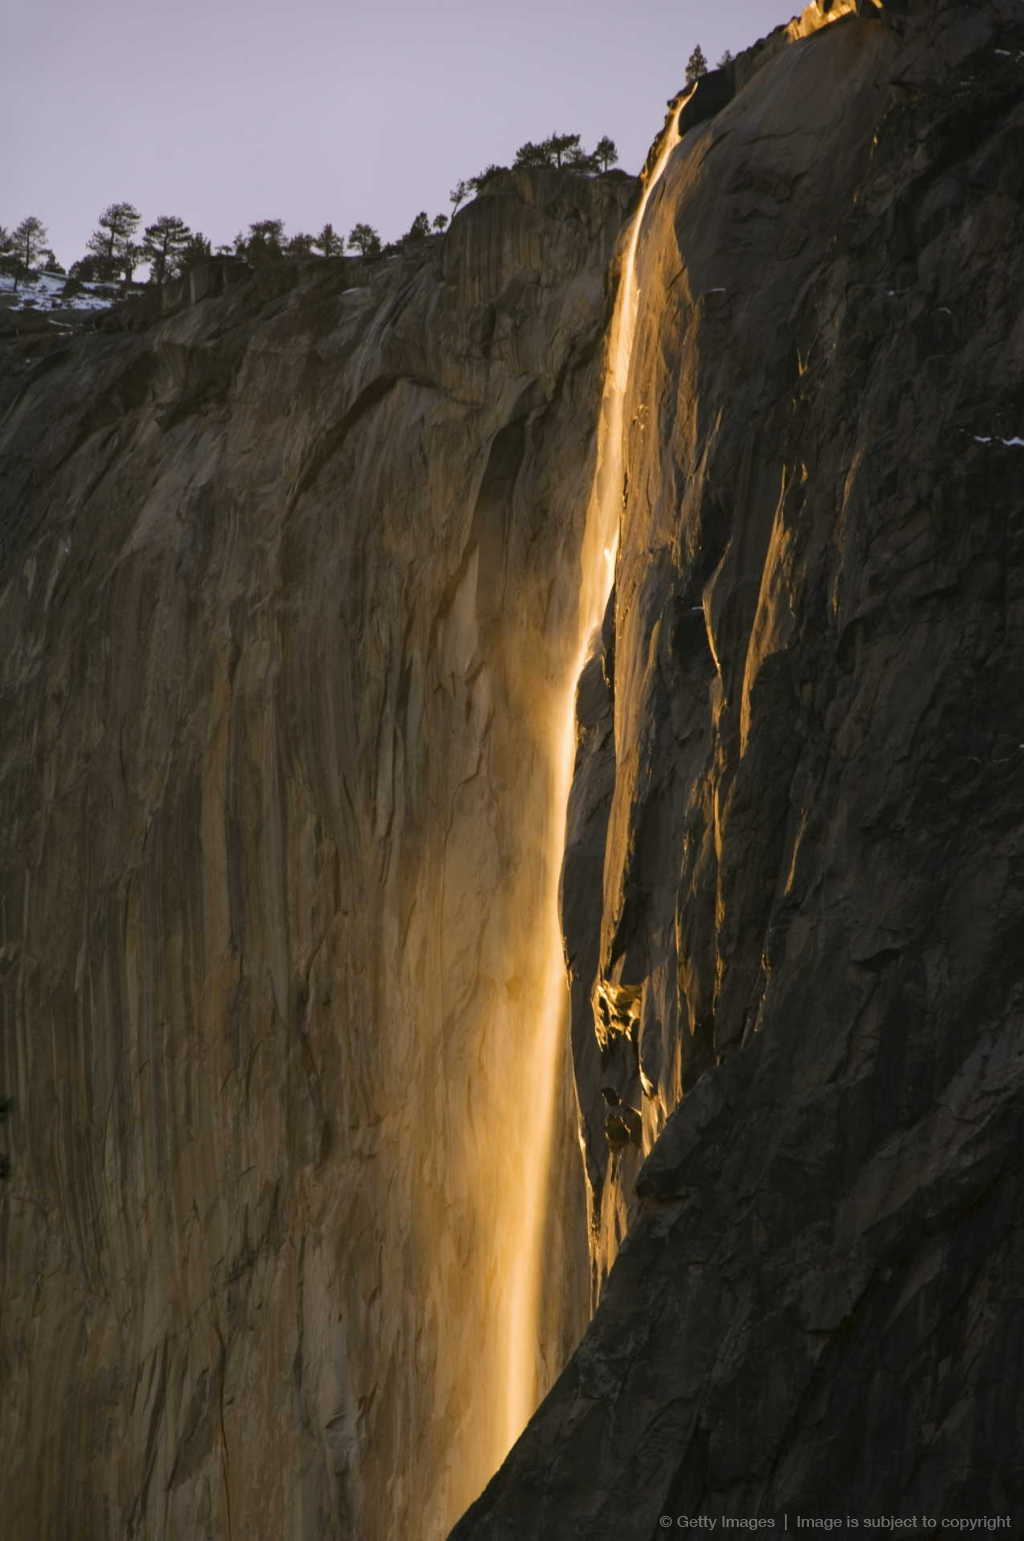 Afternoon light on Horsetail Falls, a phenomenon that occurs once or twice a year in late February due to the angle of the sun and snow melt on the cliffs,...